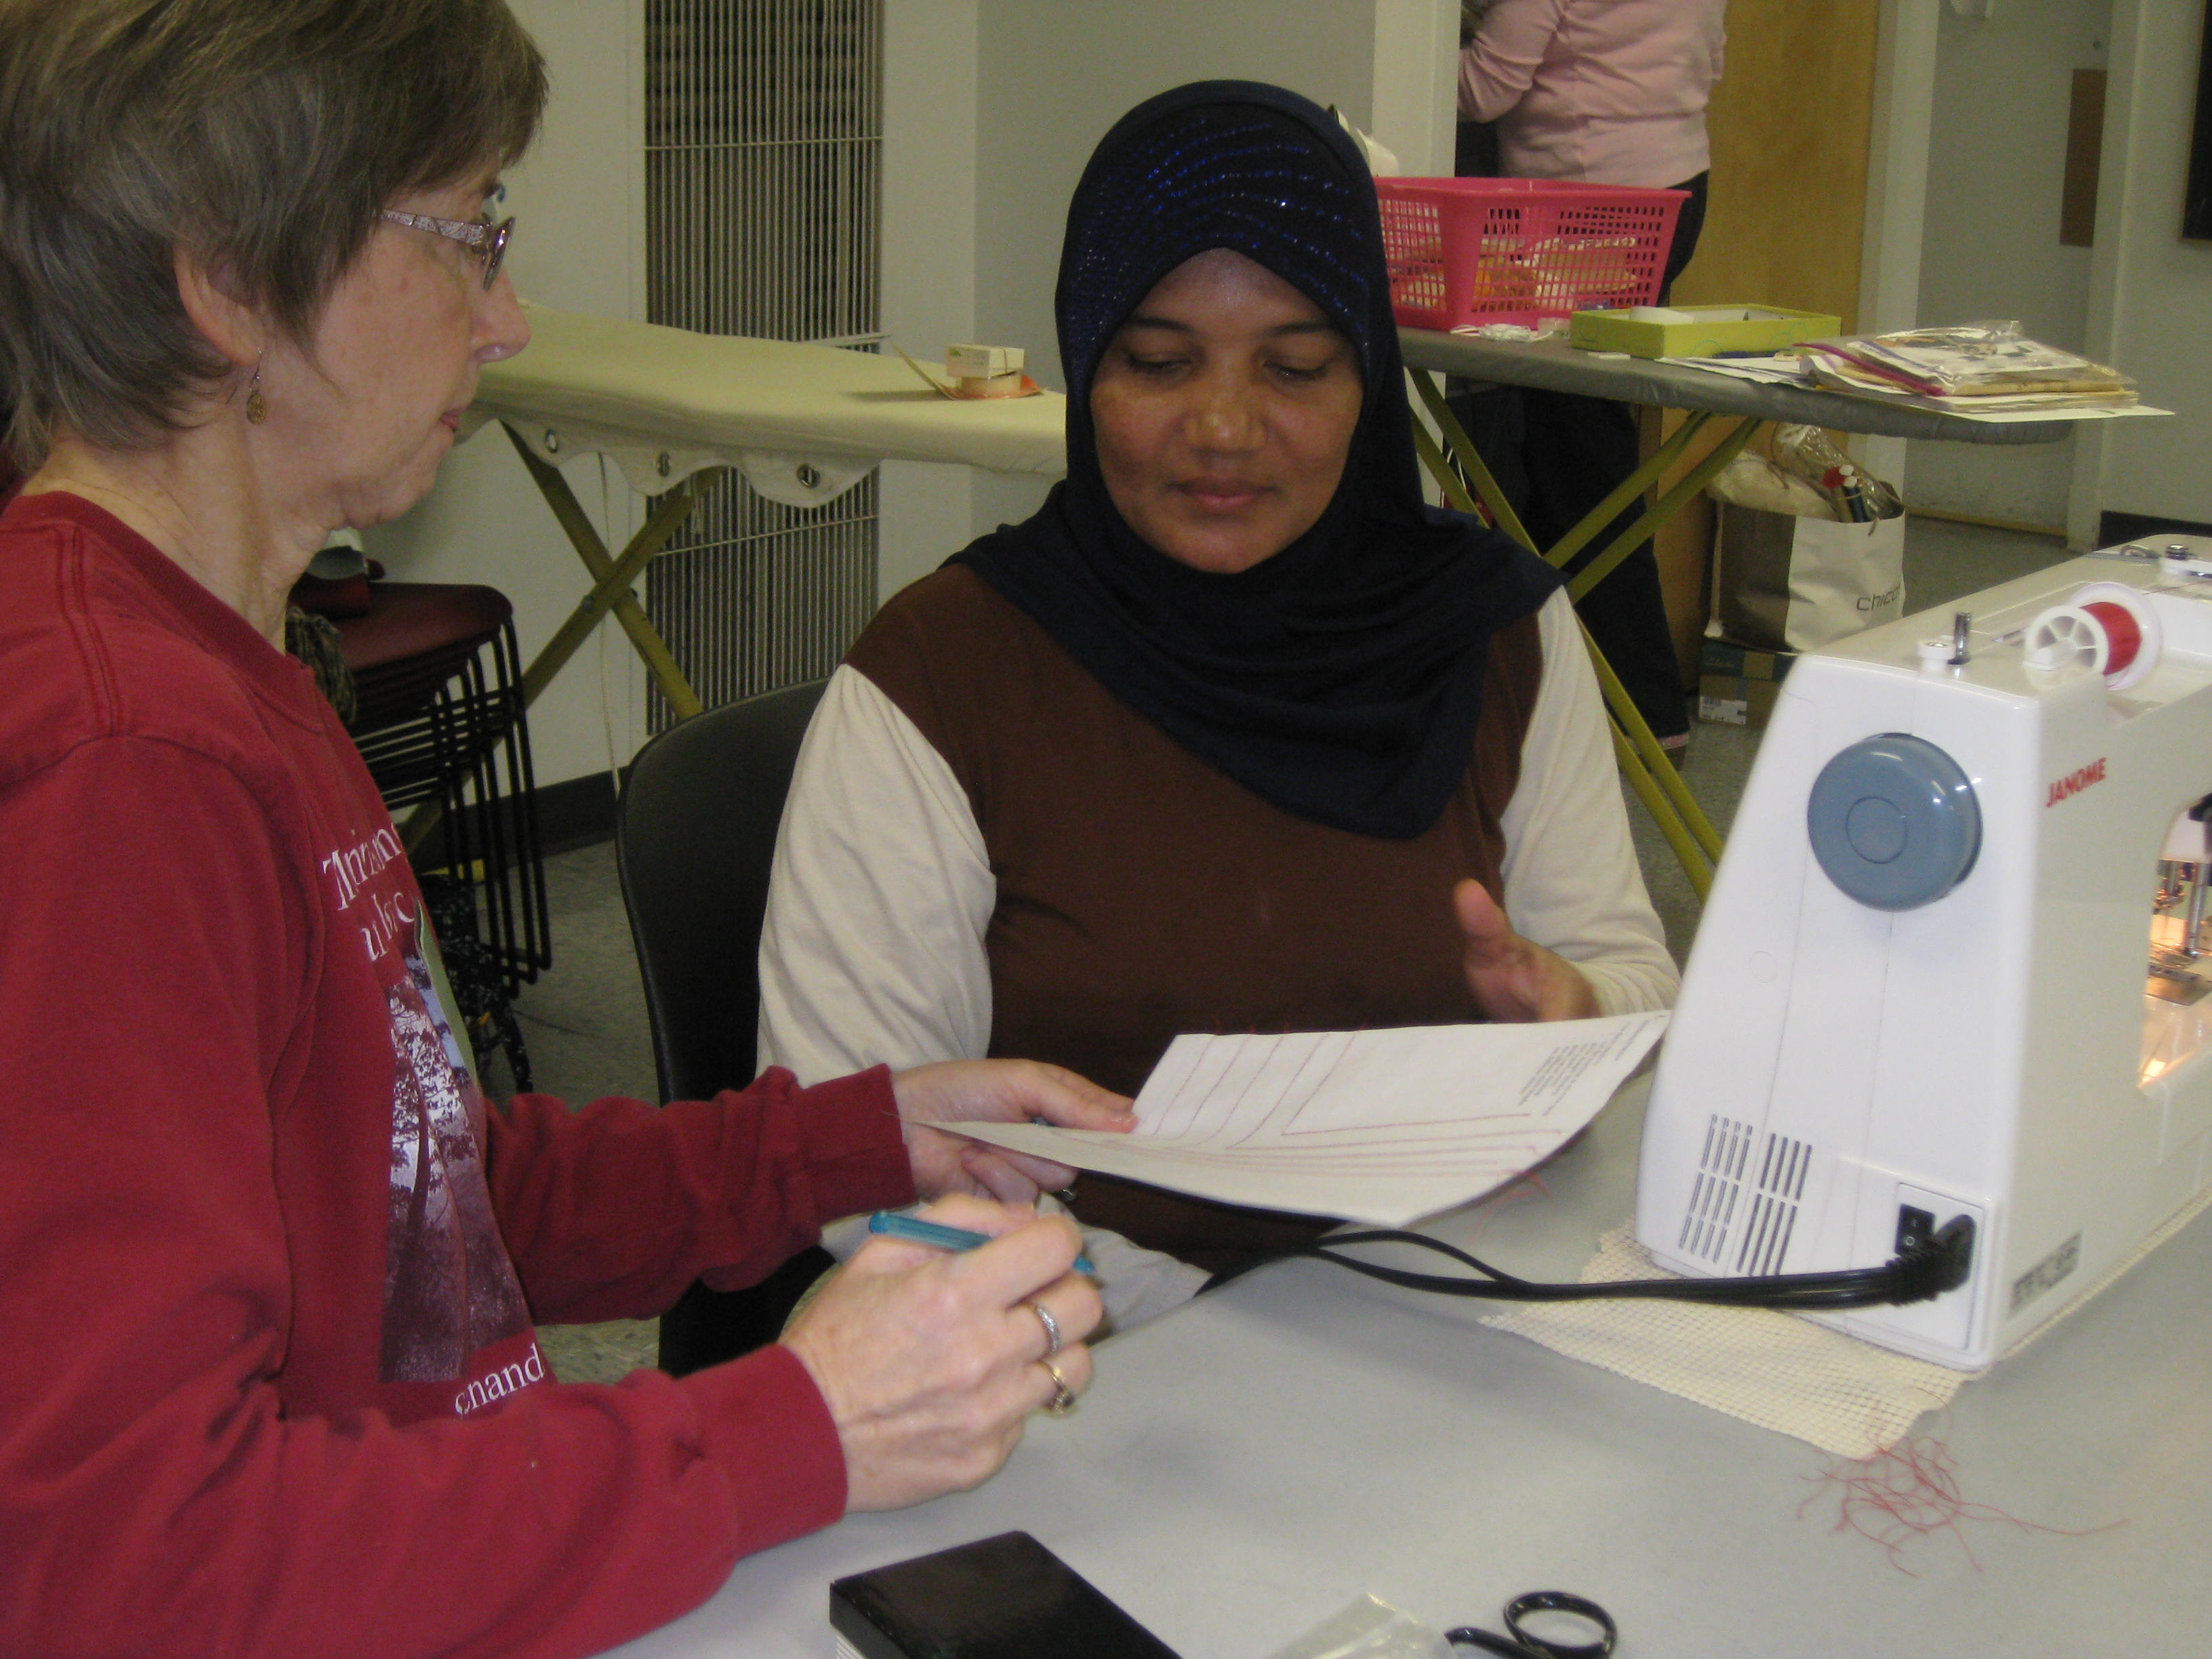 Sewing class - checking instructions